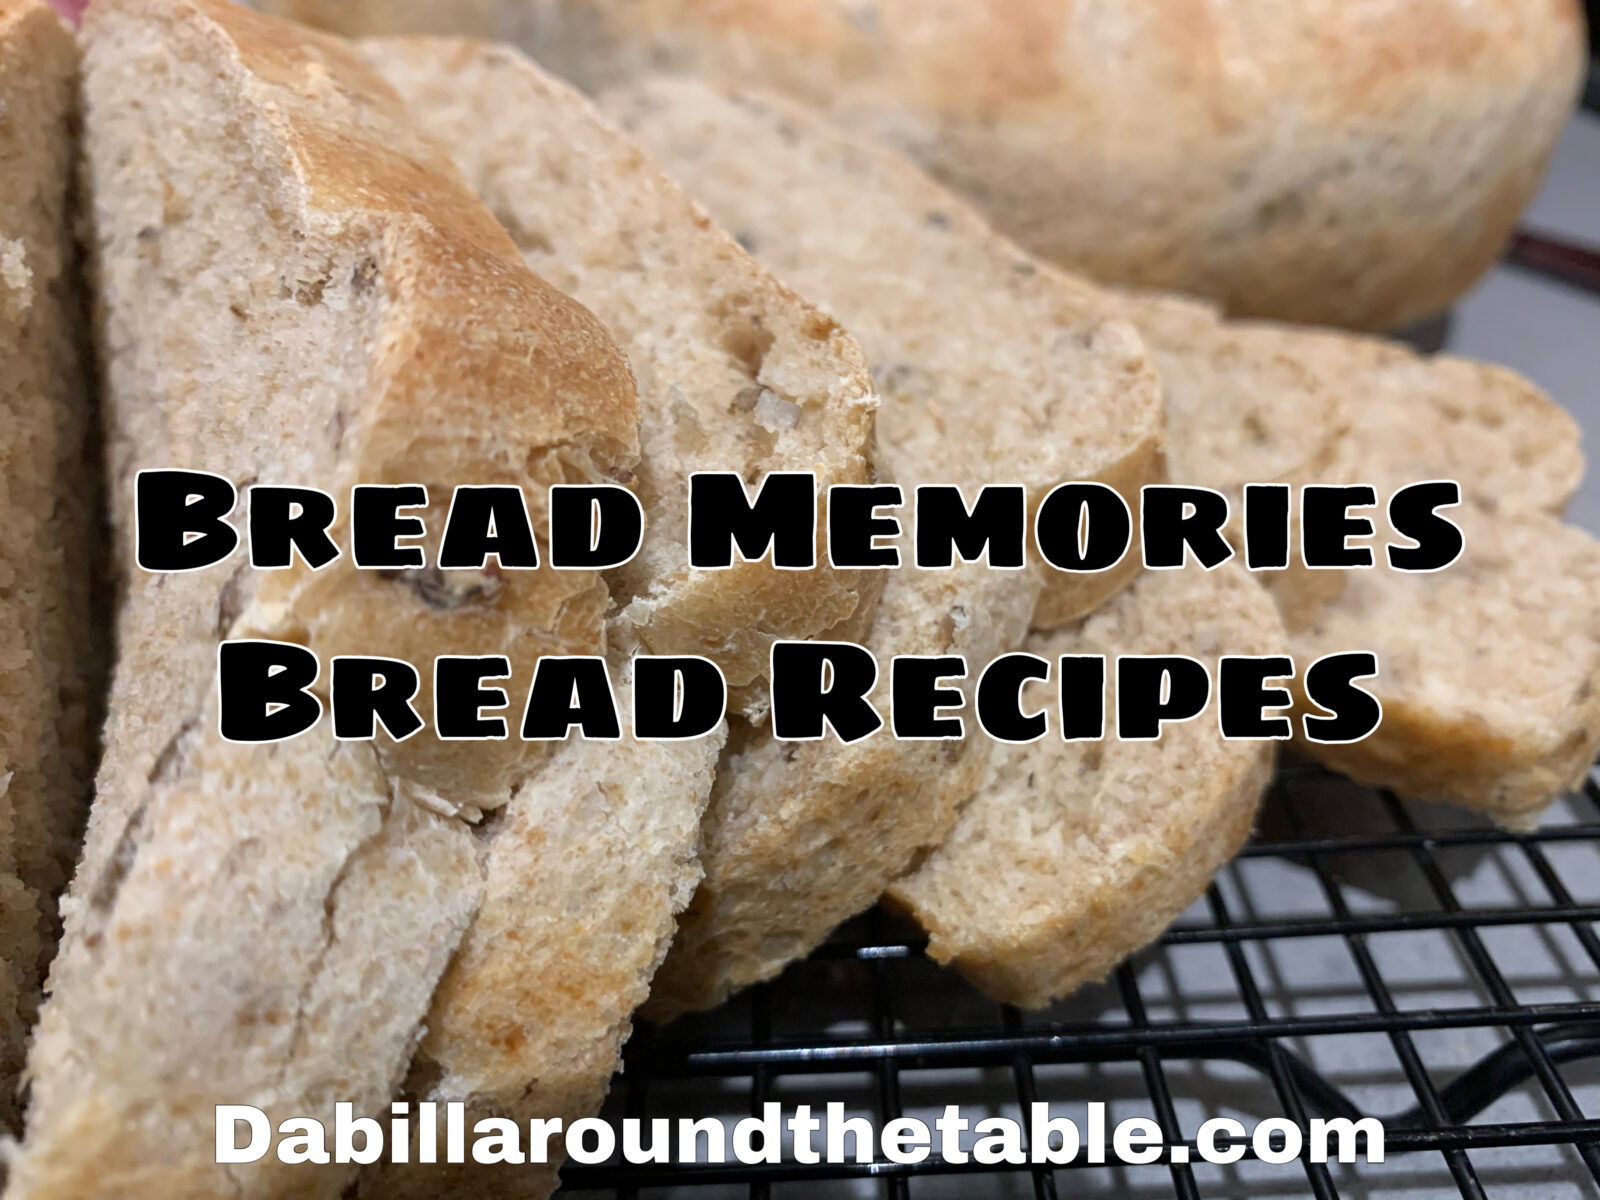 Bread Memories and Bread Recipes